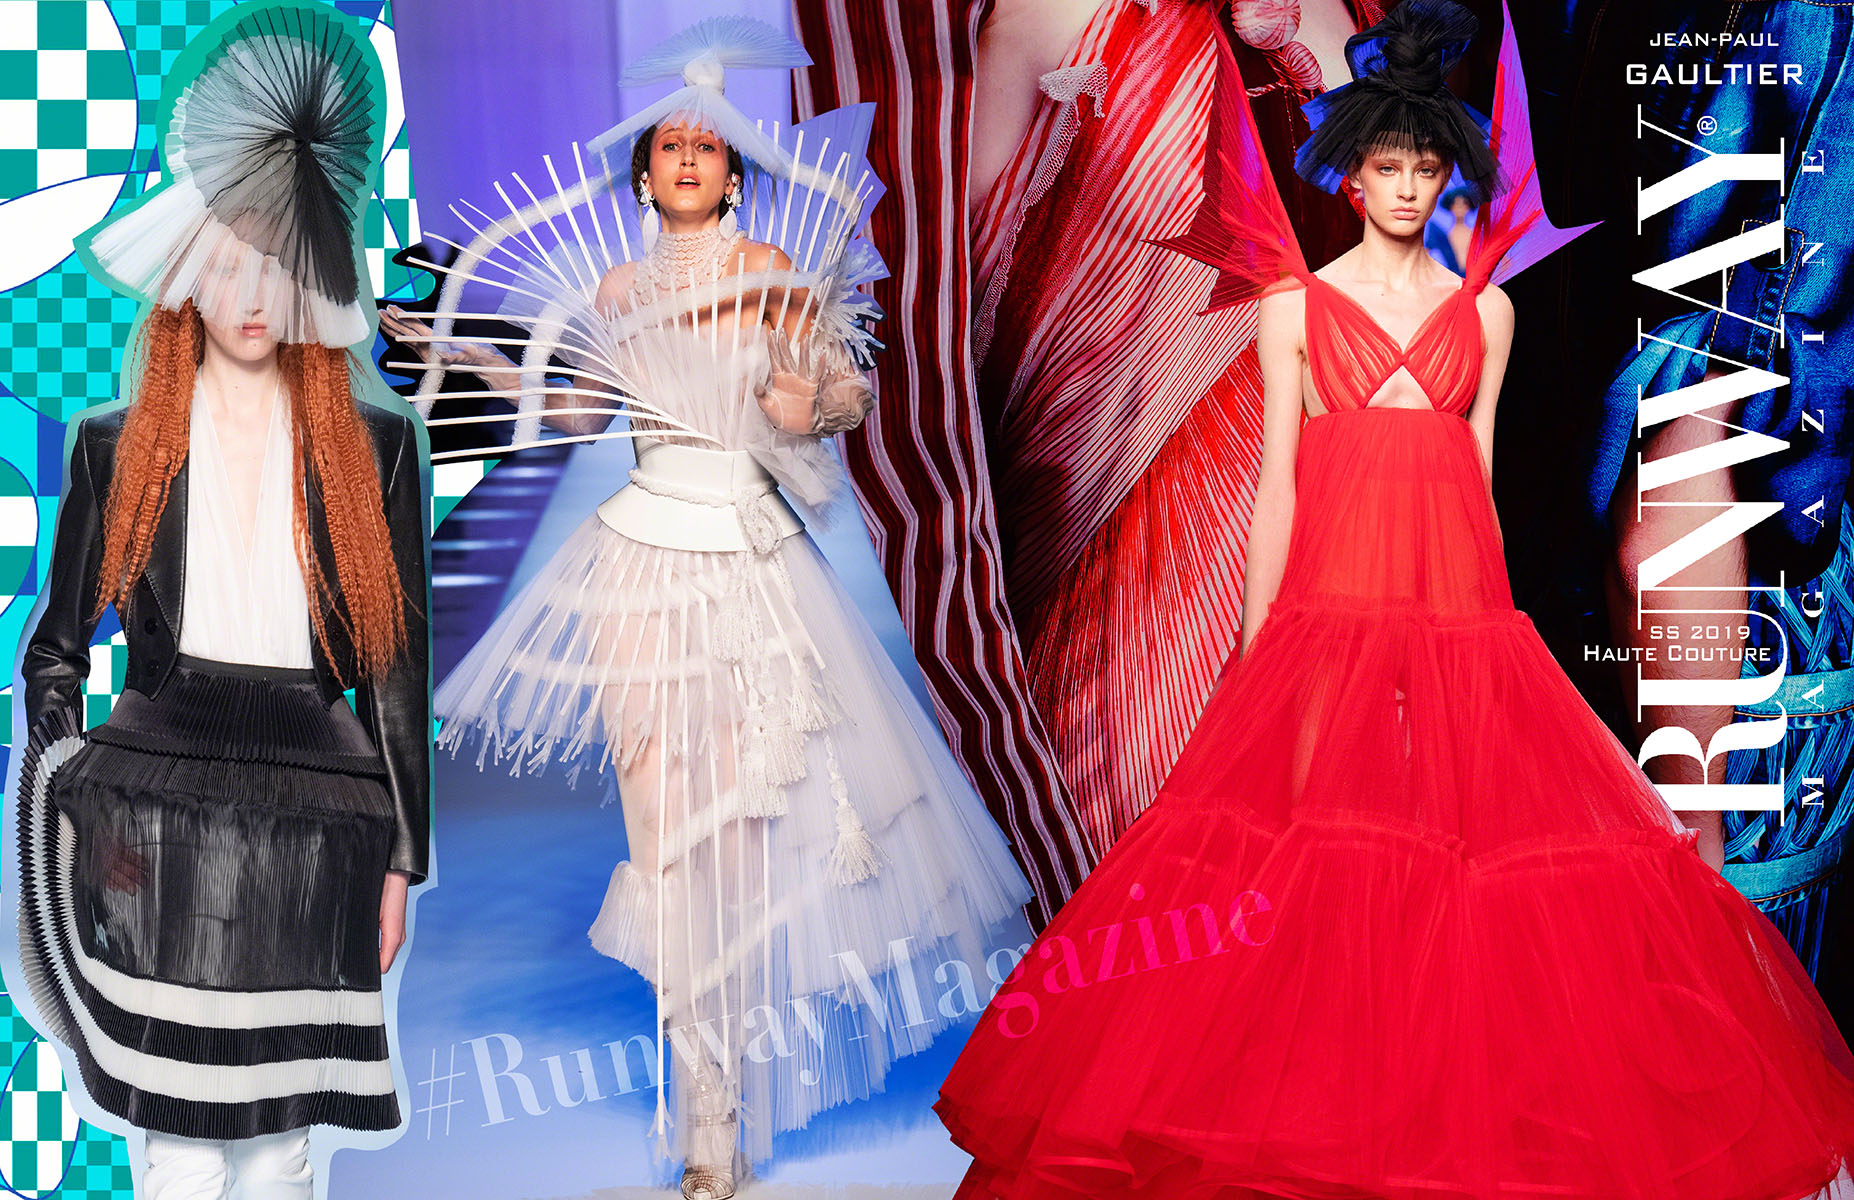 Jean Paul Gaultier Haute Couture Spring Summer 2019 by Runway Magazine